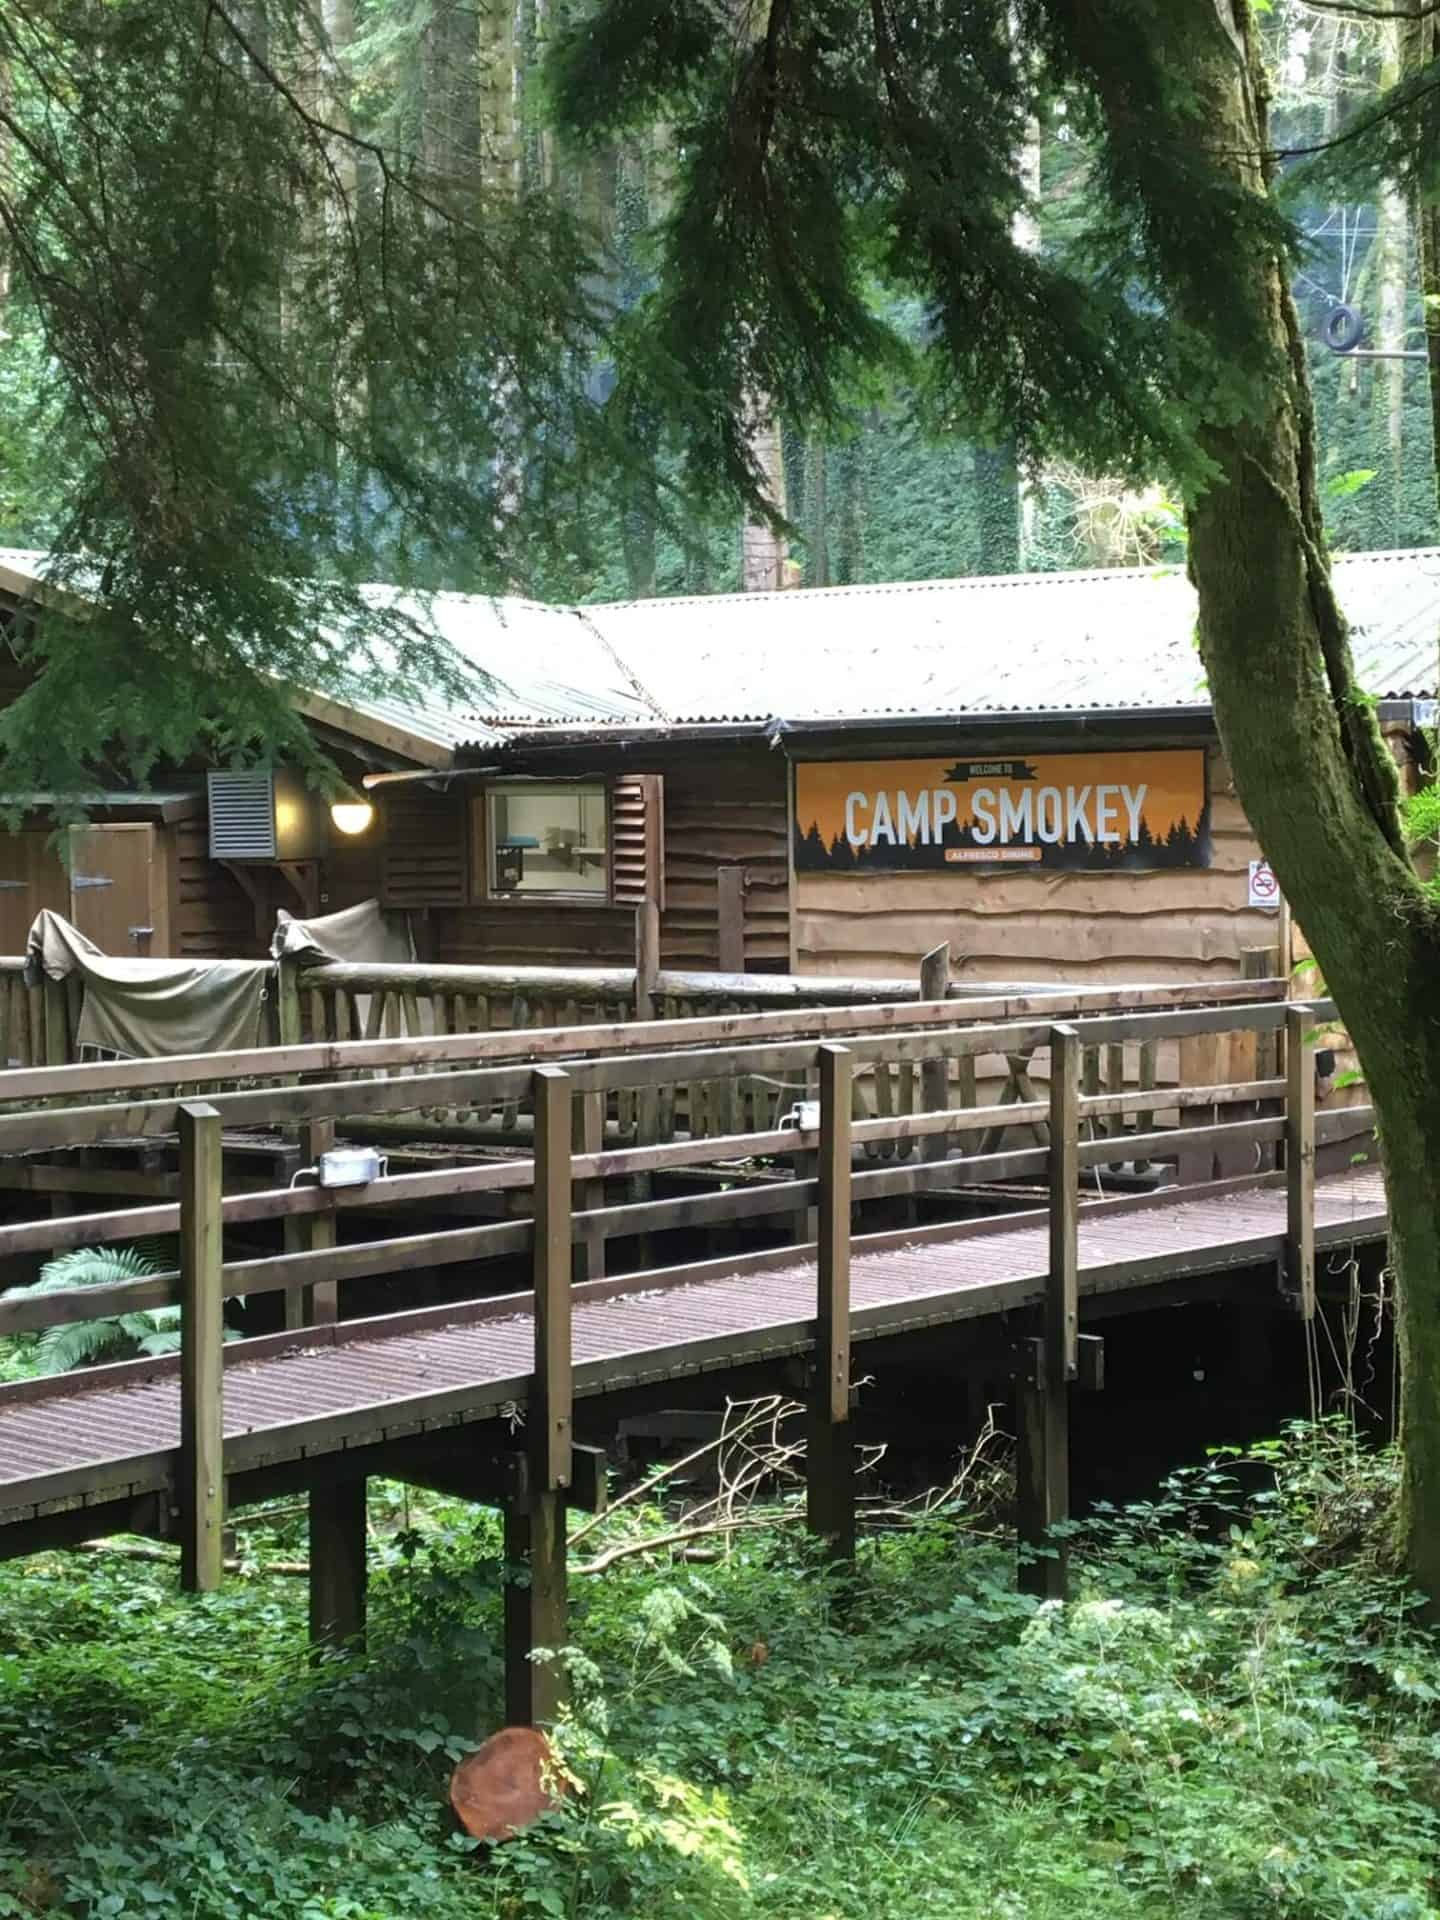 Our Family Holiday at Bluestone Wales - Part 2- Camp Smokey